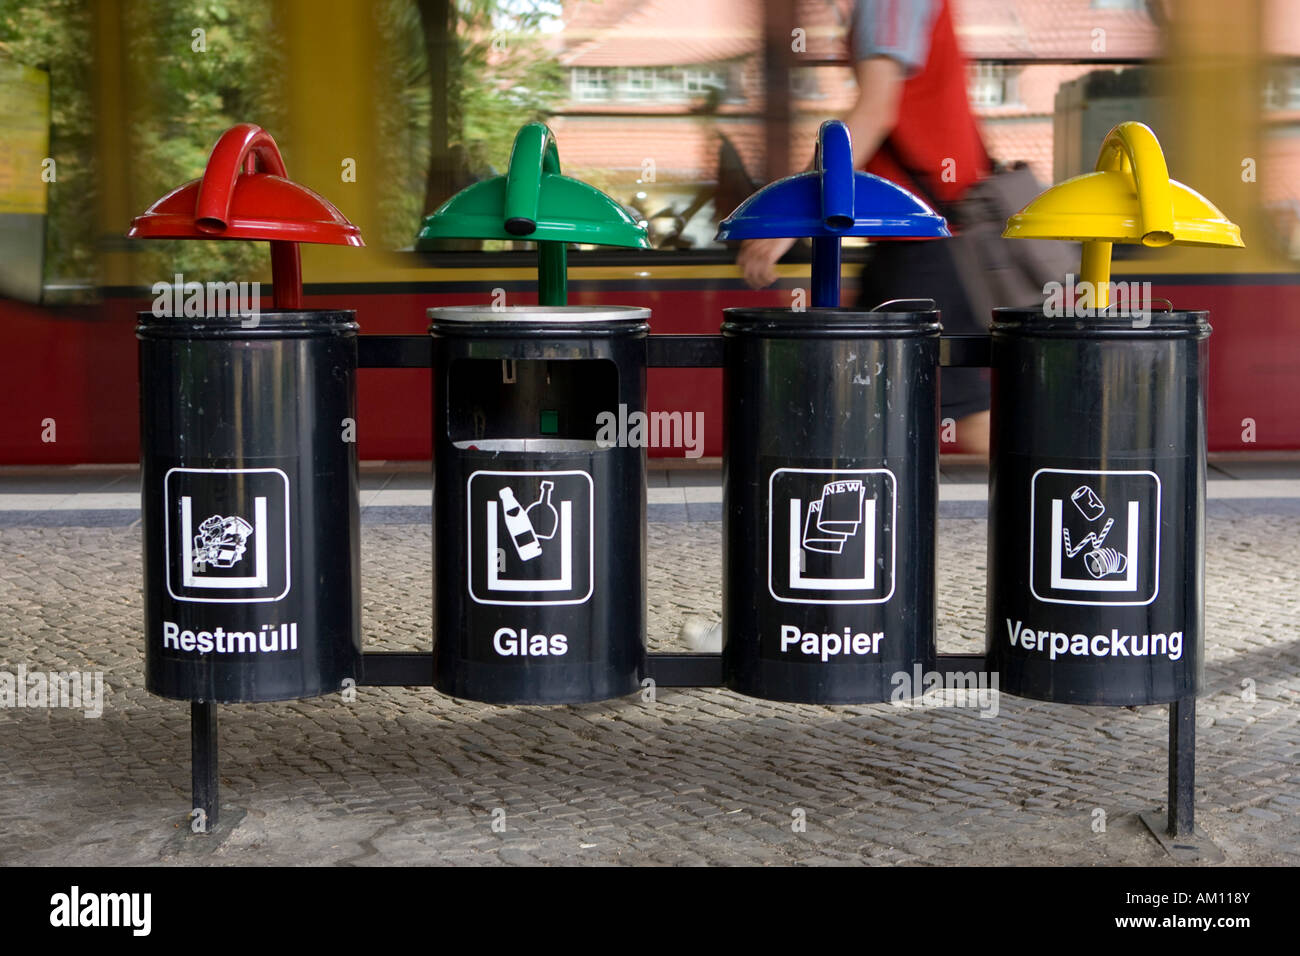 Garbage Cans Waste Separation Berlin Germany Stock